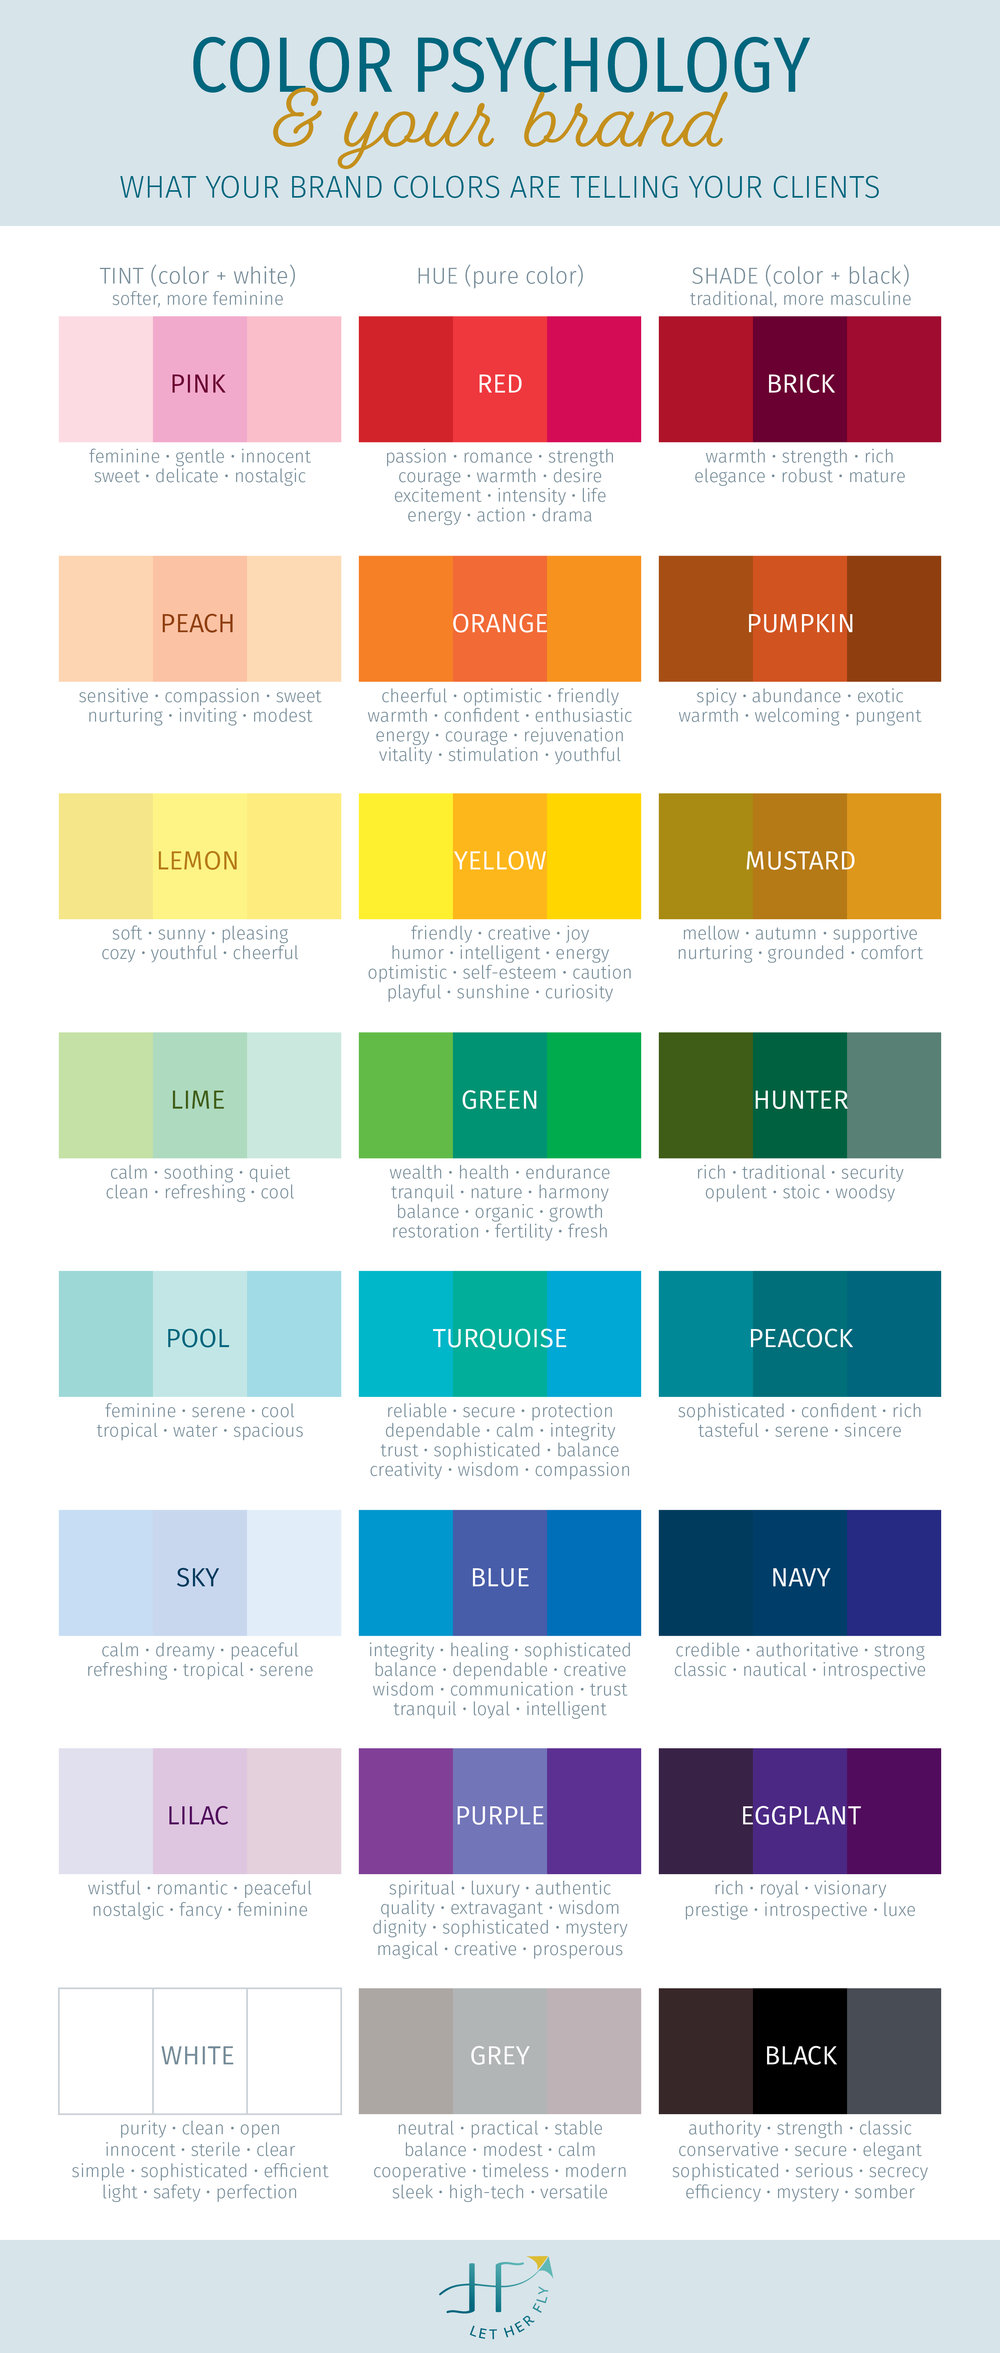 color psychology and choosing brand colors